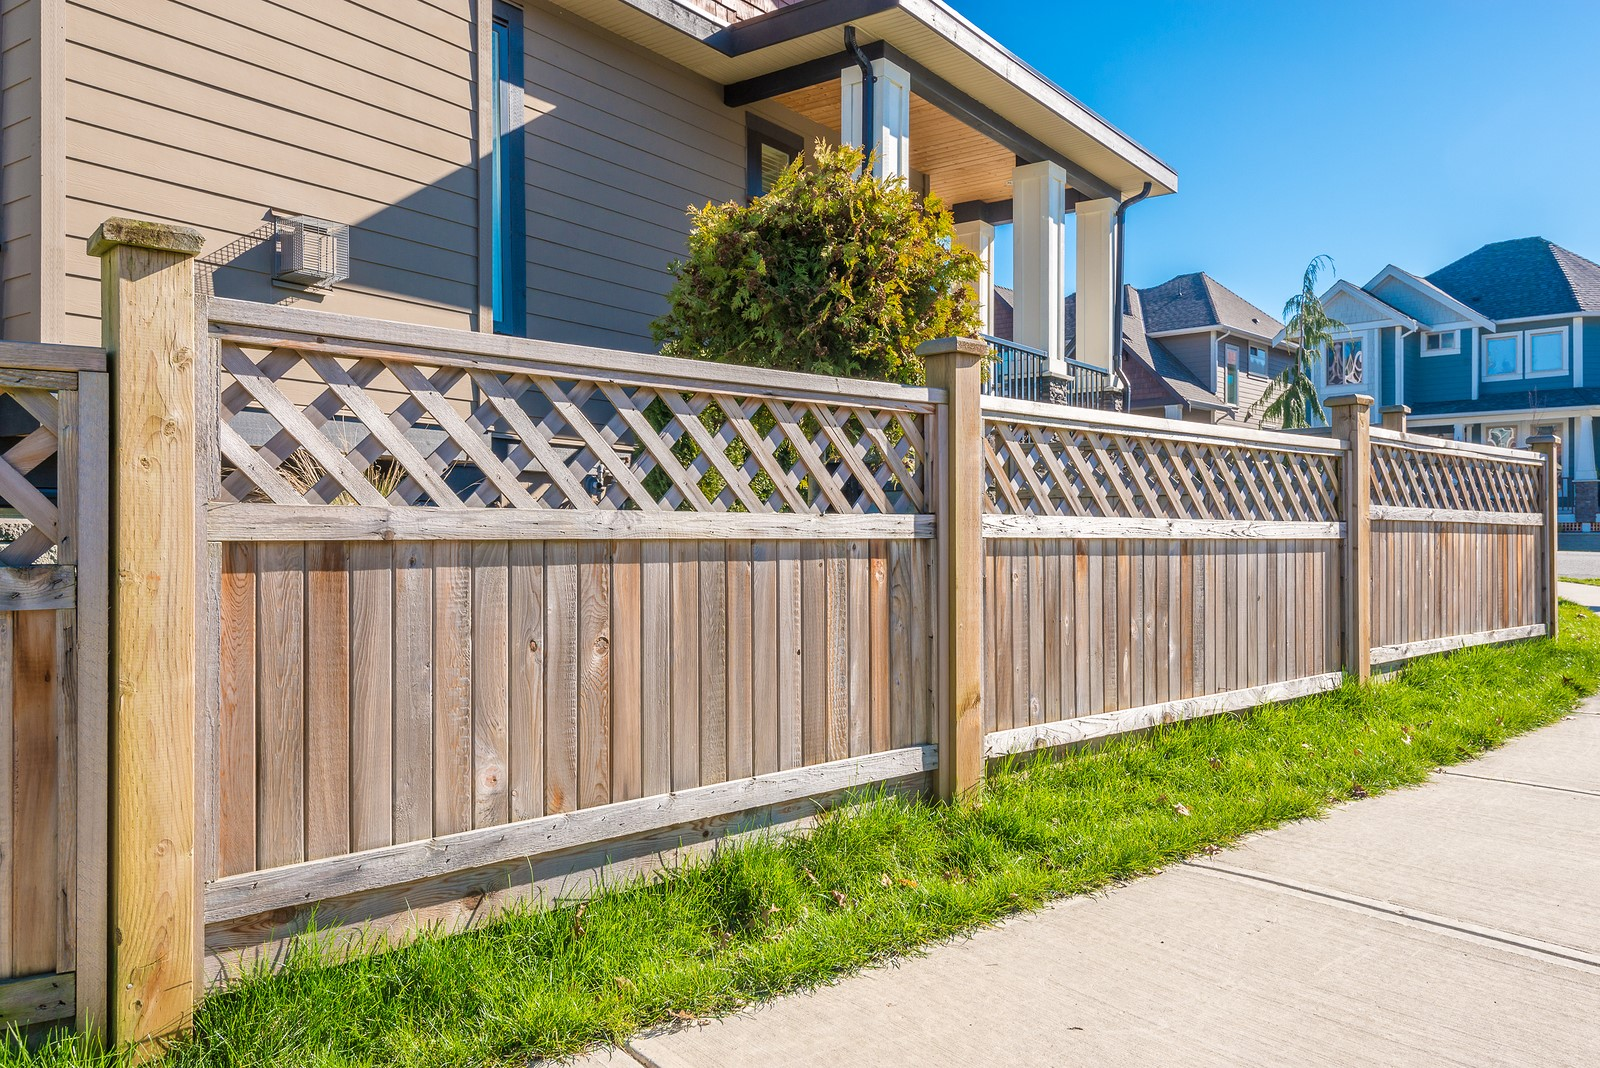 Put Up Fencing around Your Own Property